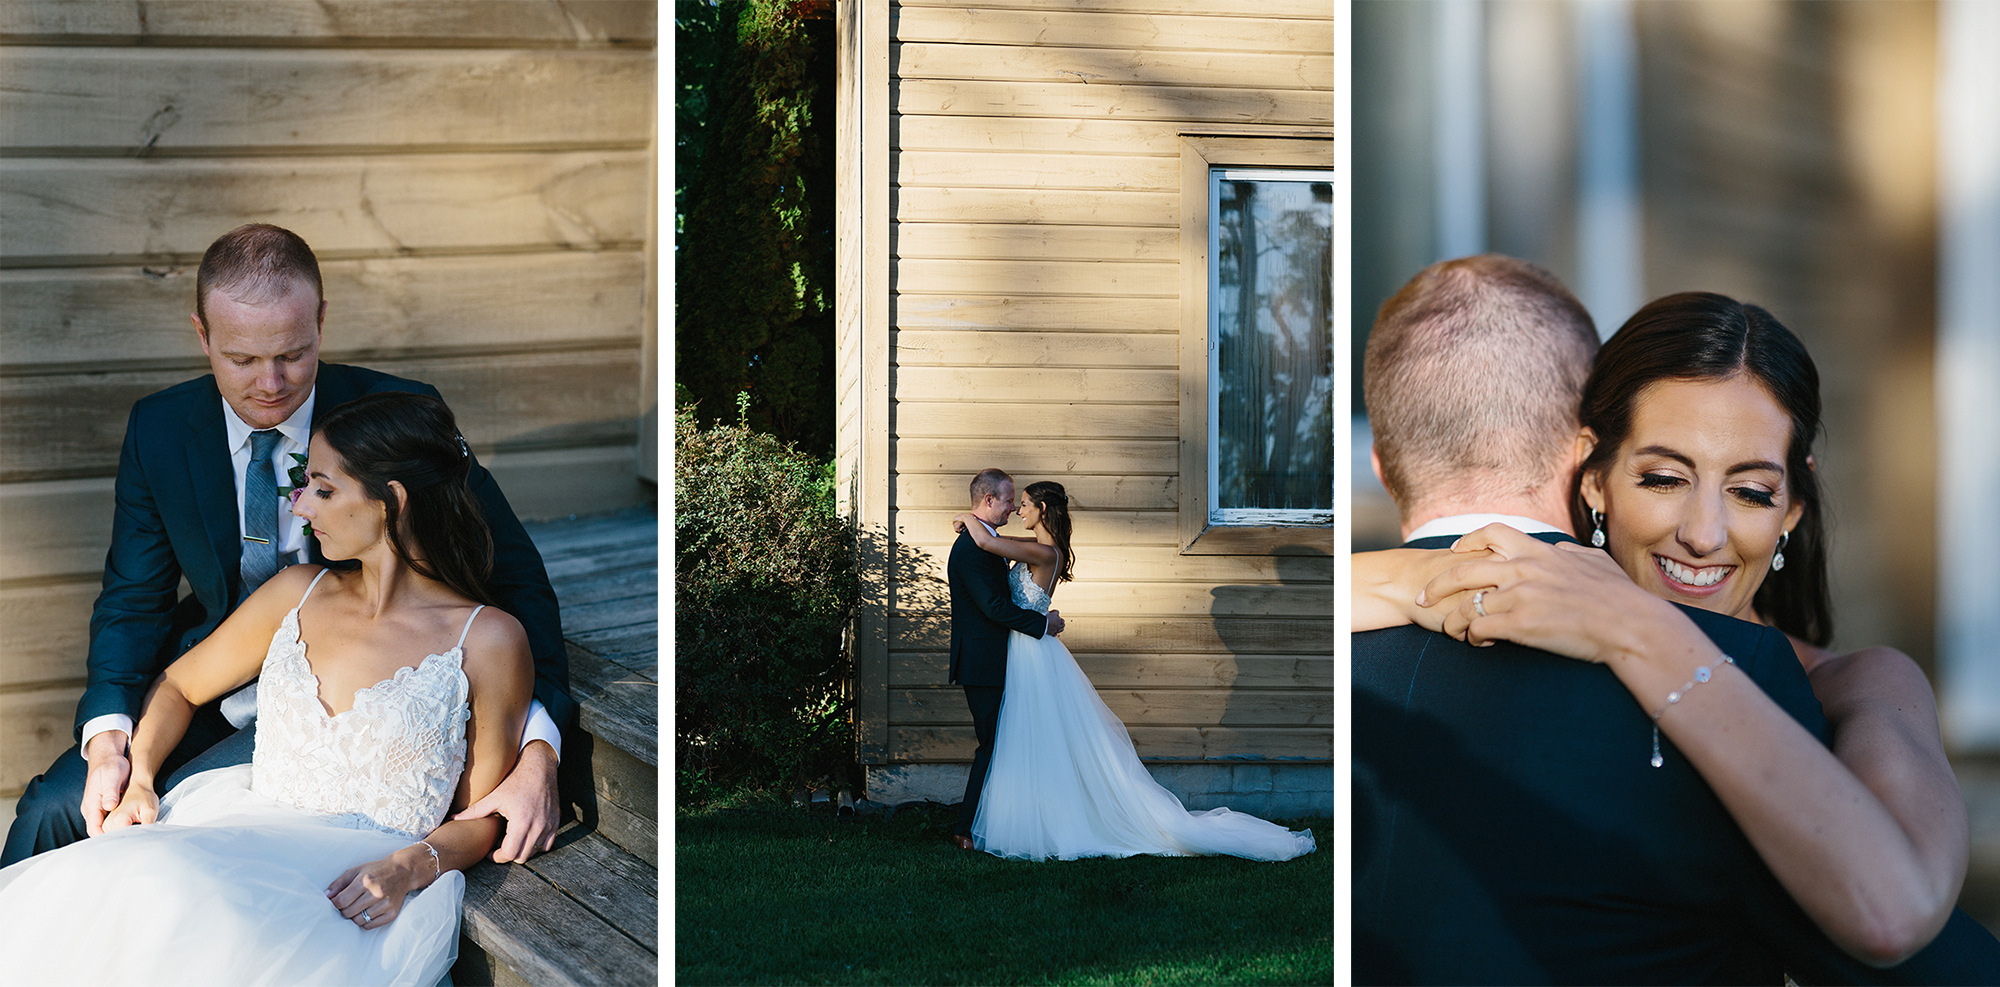 13-golden-hour-portraits-with-bride-and-groom-on-steps-At-Eganridge-Resort-Venue-Muskoka-Ontario-Wedding-Photography-by-Ryanne-Hollies-Photography-Toronto-Documentary-Wedding-Photographer.jpg